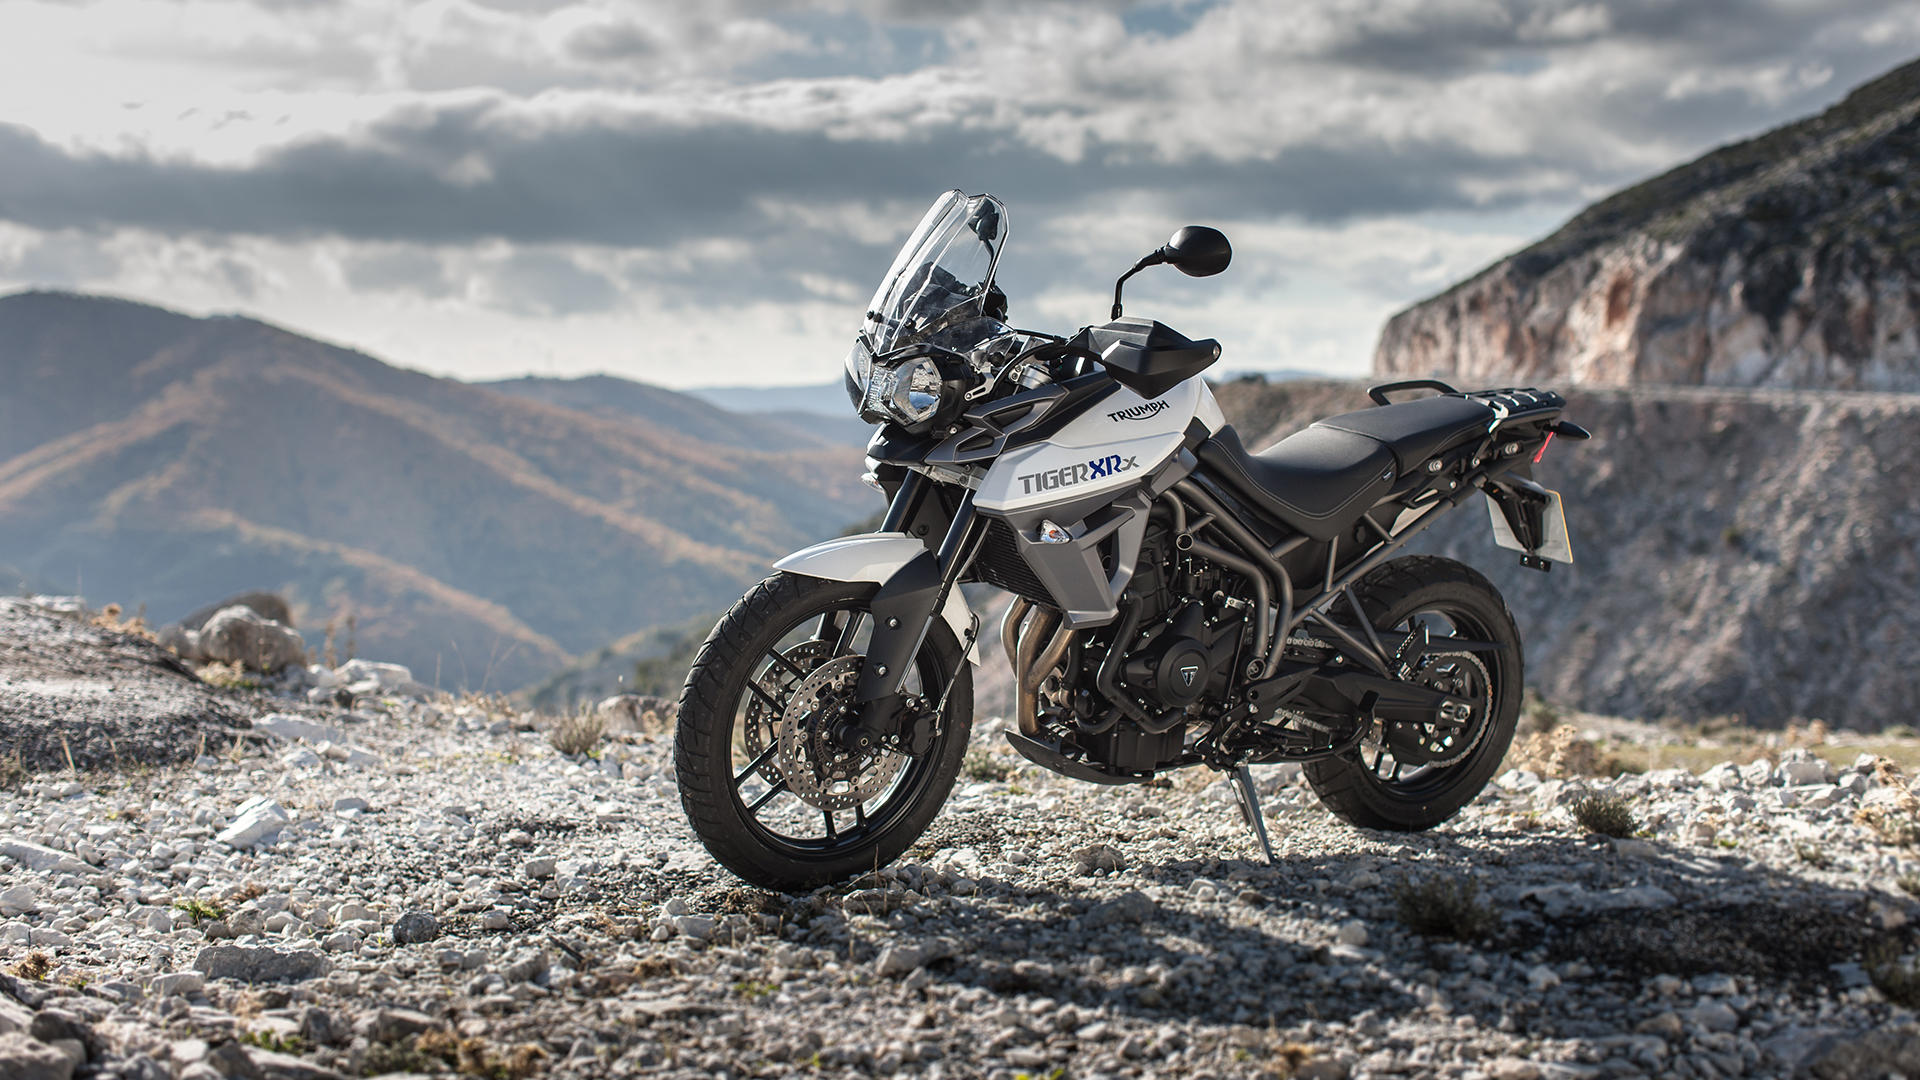 Triumph Tiger 800 2015 Xrx Price Mileage Reviews Specification Gallery Overdrive